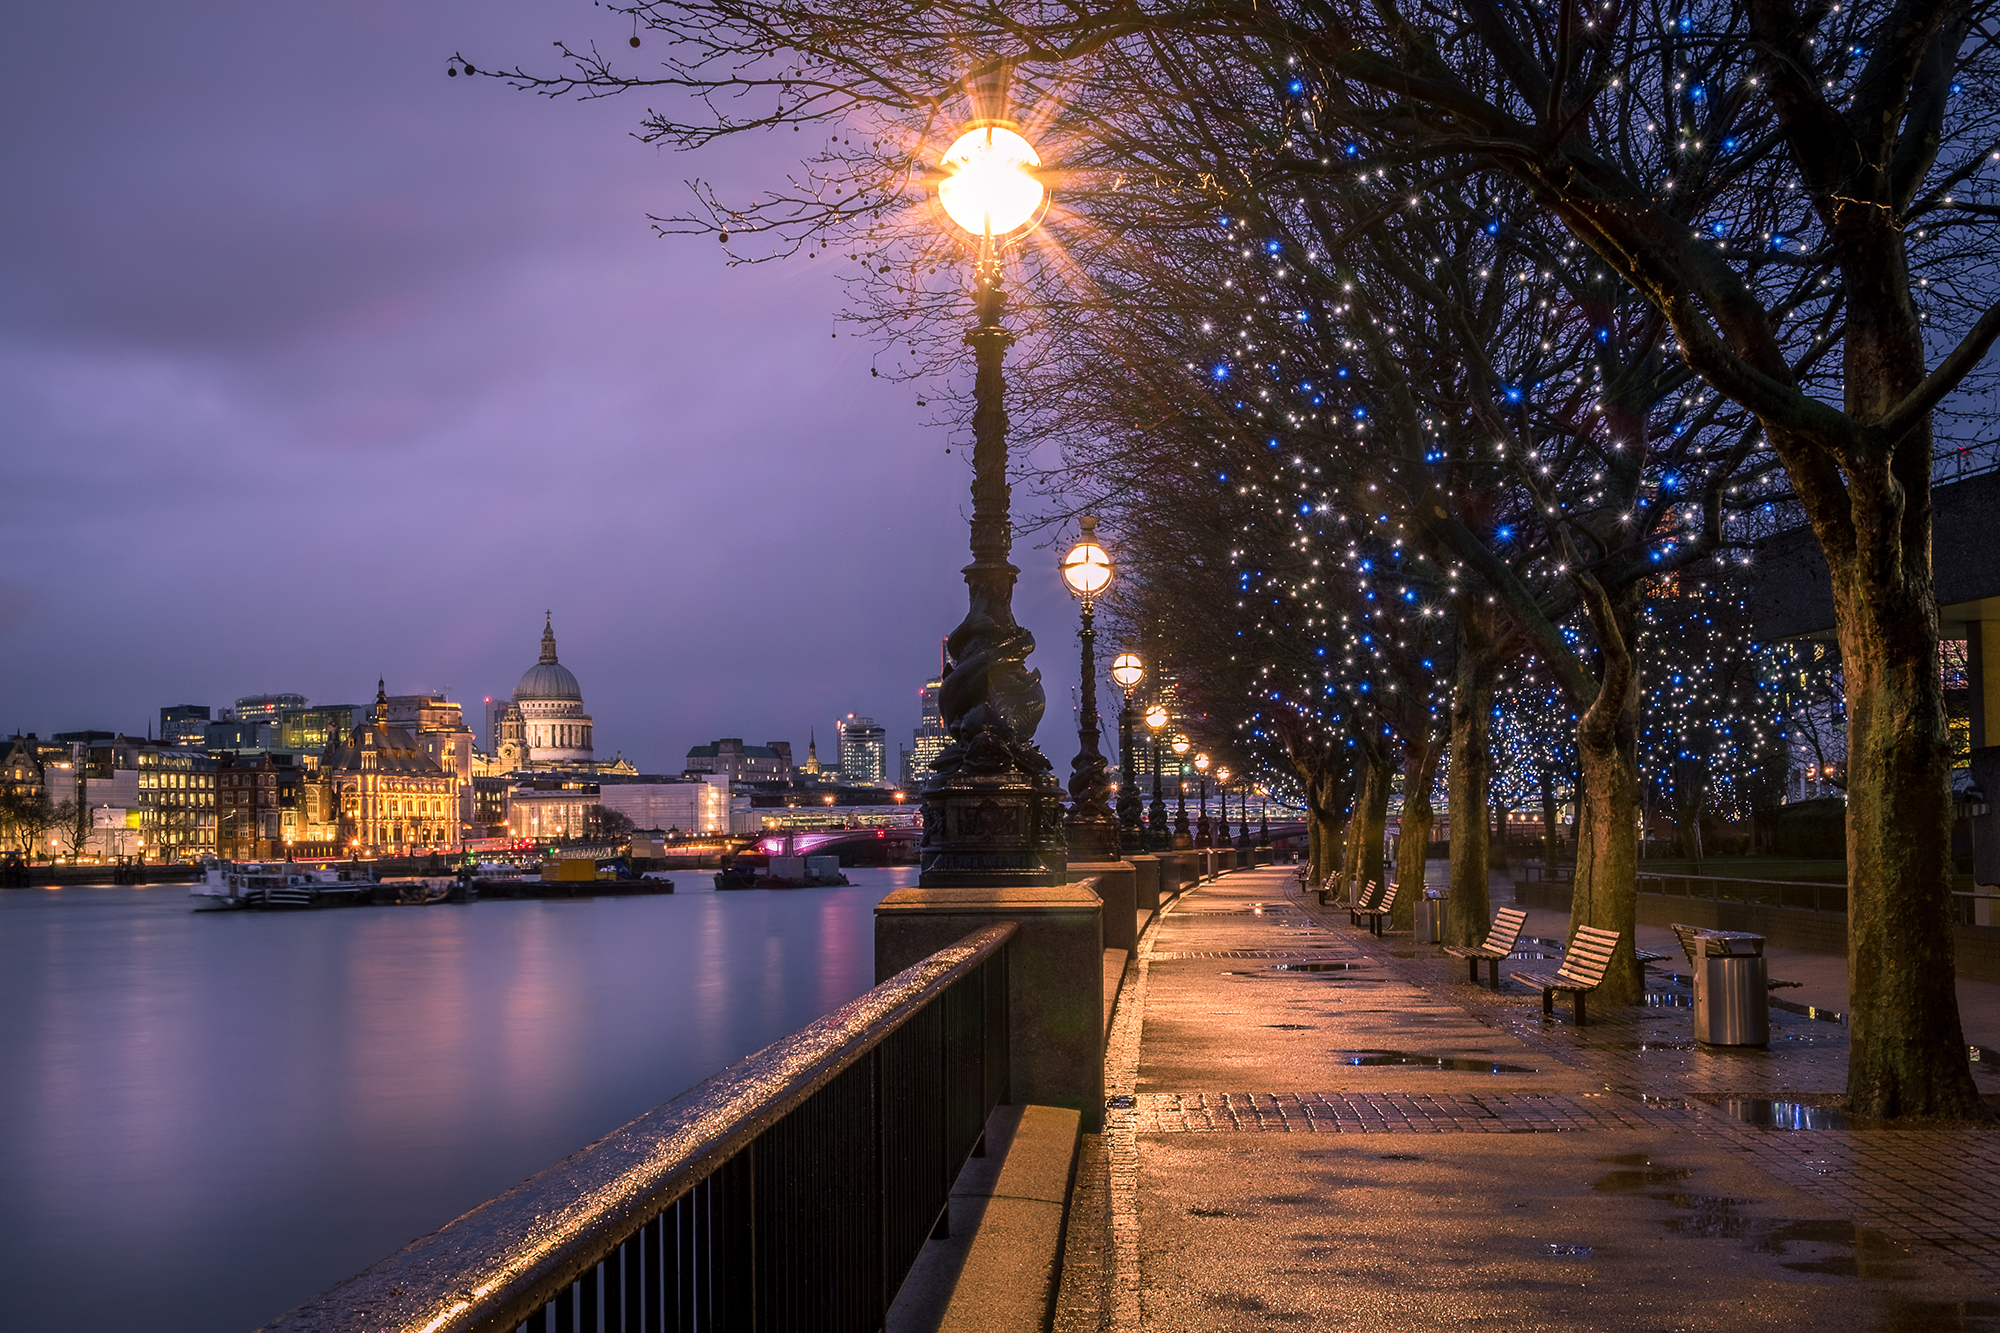 Photo of Londons South Bank taken at night by Trevor Sherwin